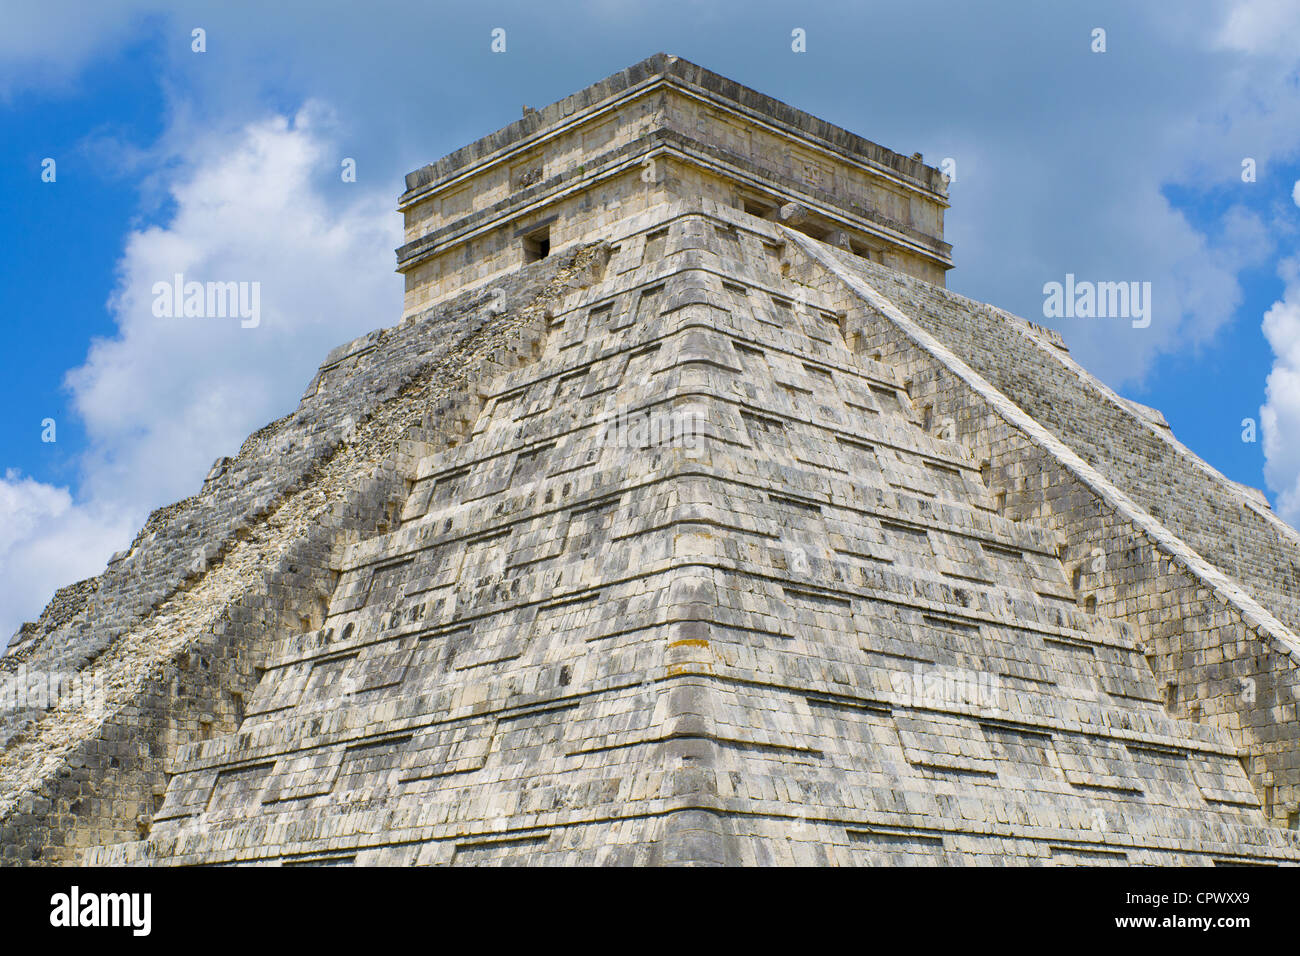 White puffy clouds over Mayan Pyramid of Kukulkan (also known as El Castillo) and ruins at Chichen Itza Yucatan - Stock Image